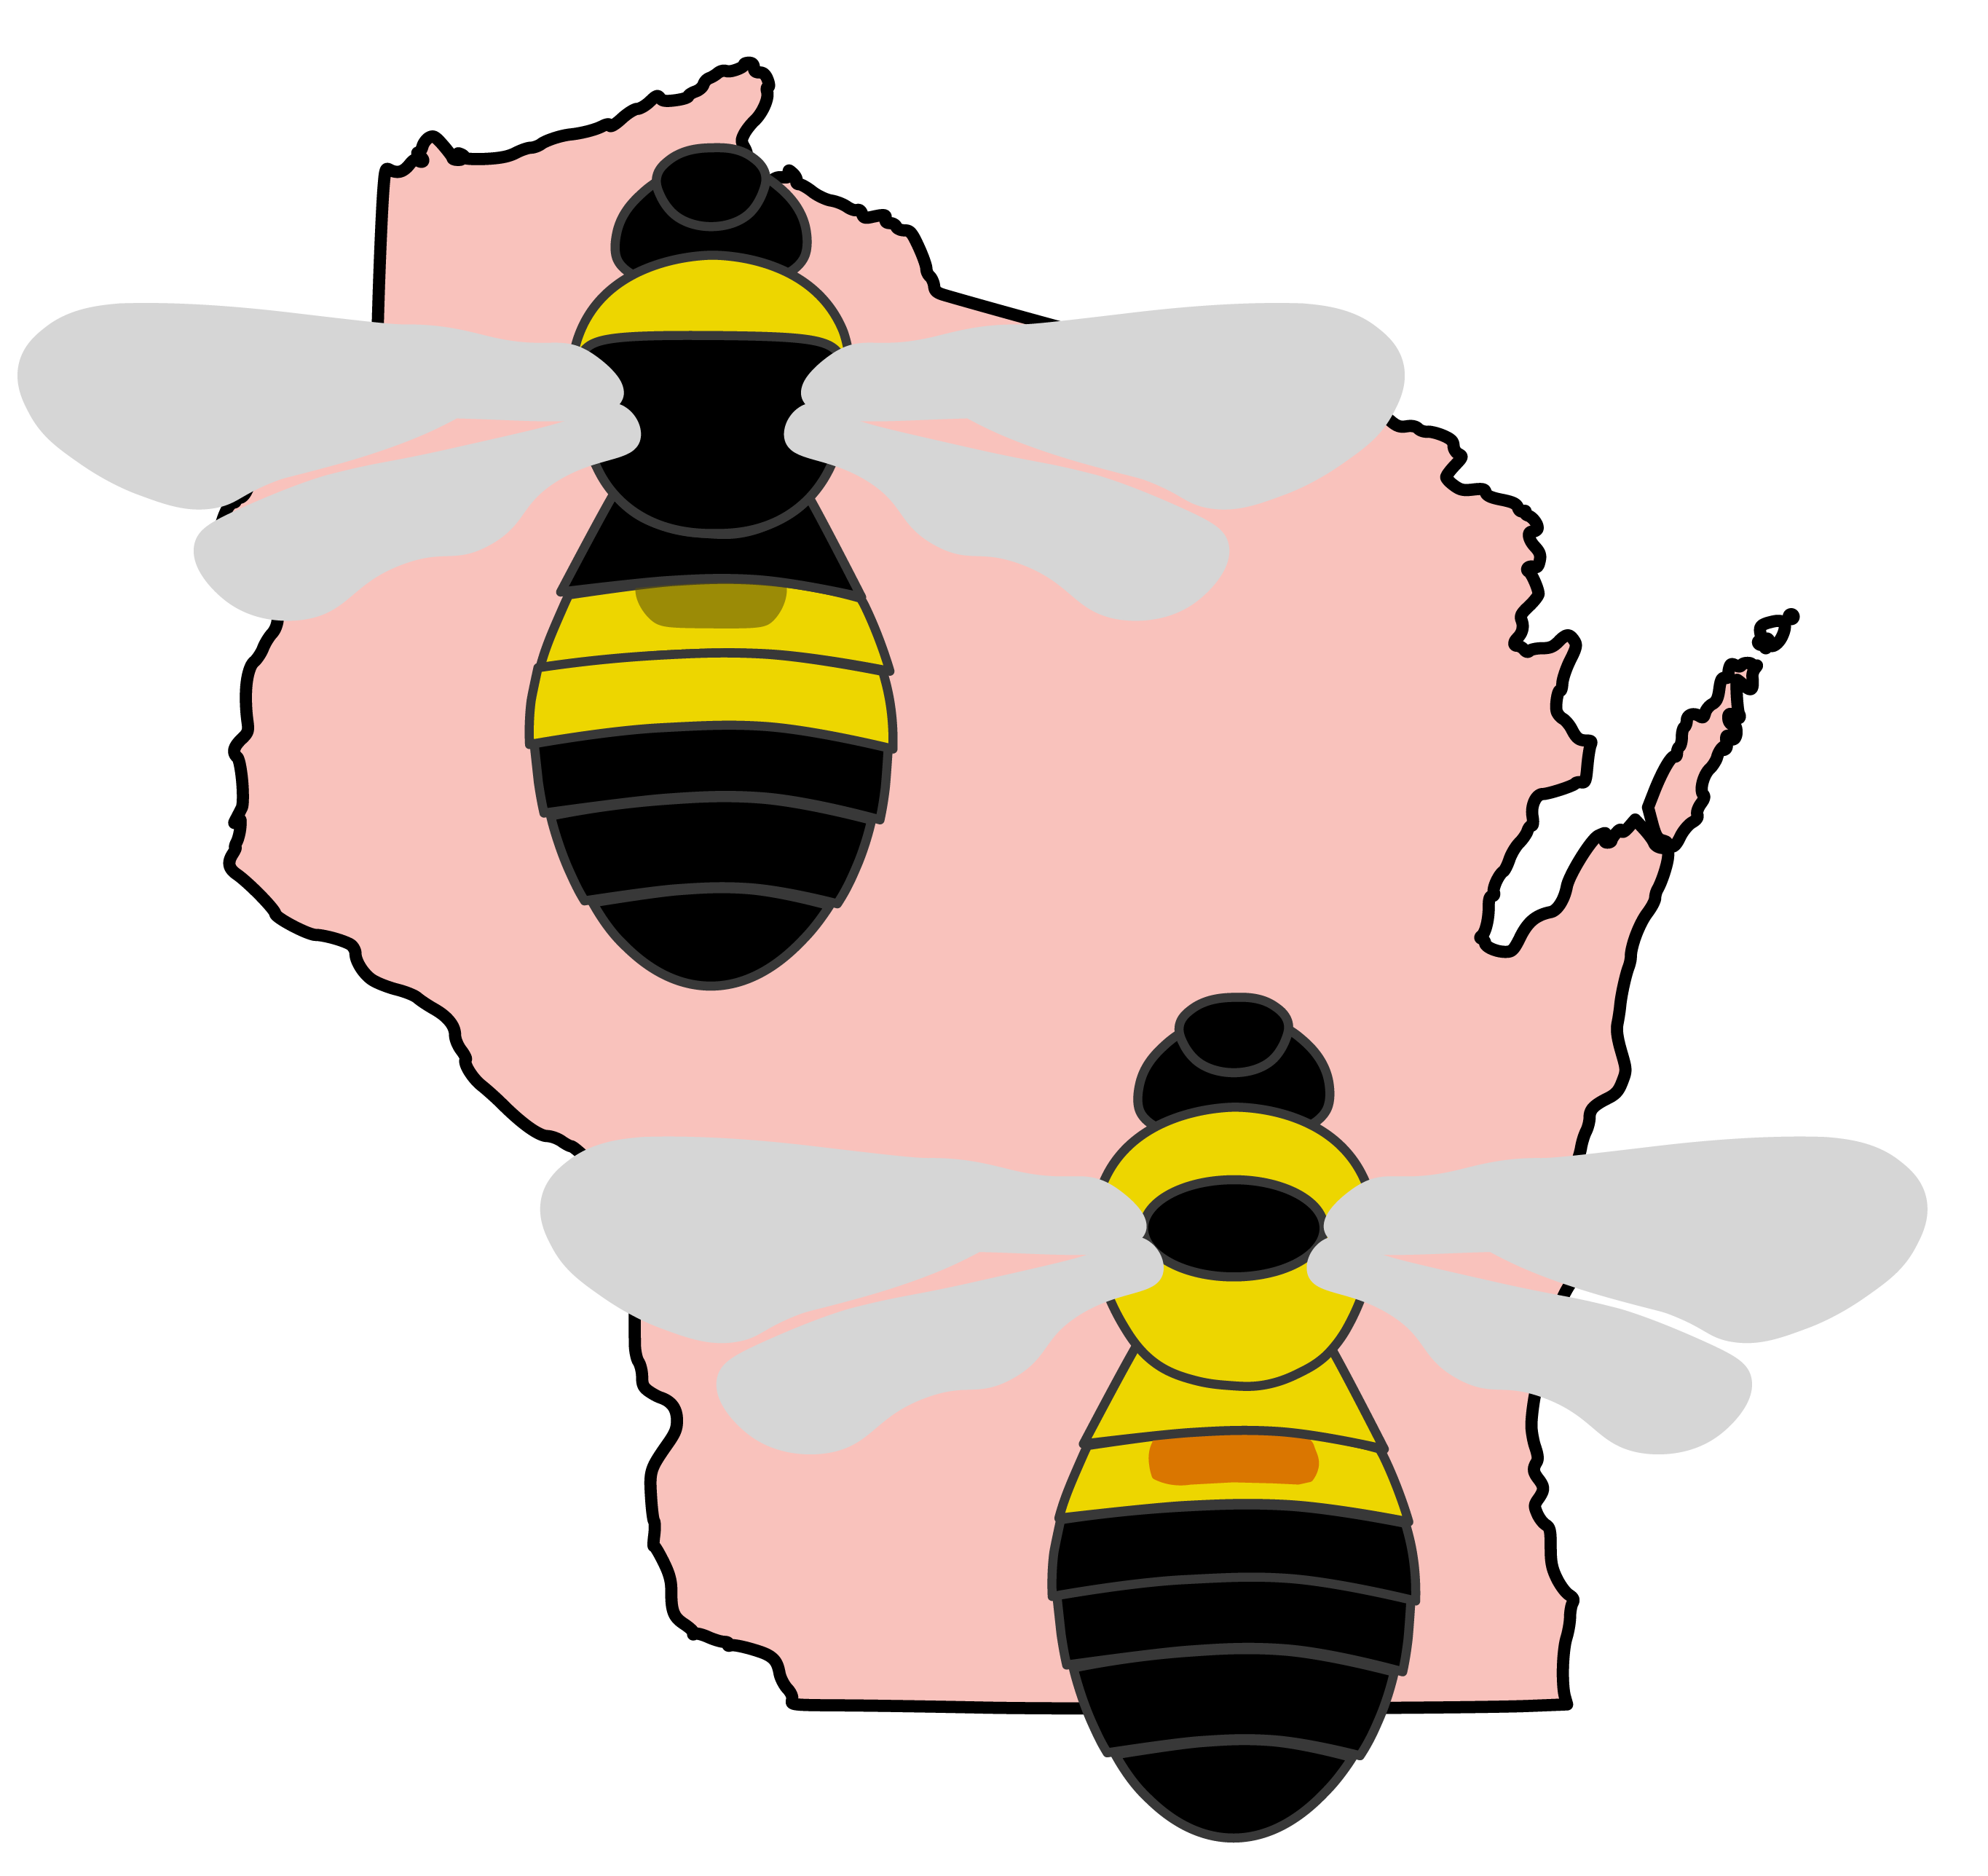 Illustrations of two now rare species of bumble bee, the tri-colored and rusty patched bumble bee